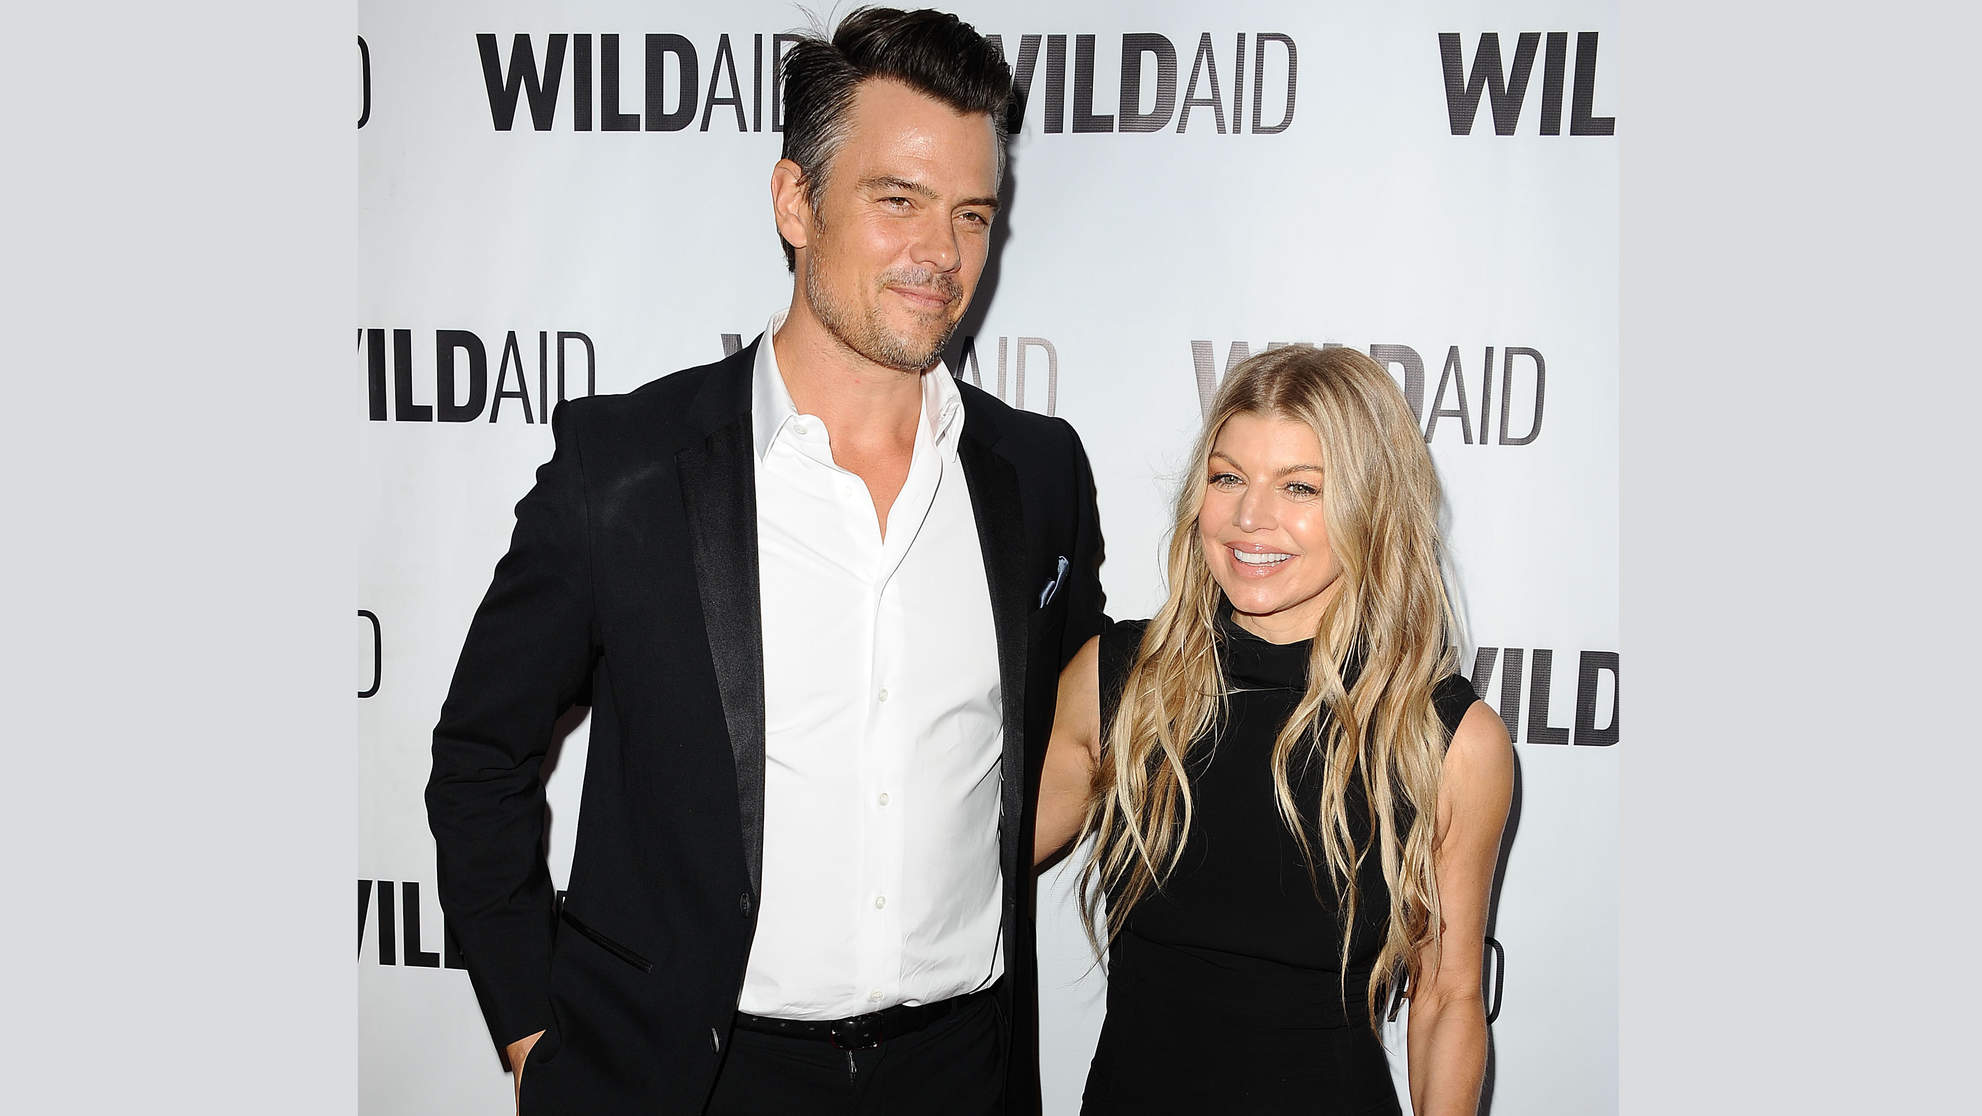 Fergie and Josh Duhamel's Differences Were 'A Factor' in Split: 'This Has Been a Long Time Coming,' Says Source